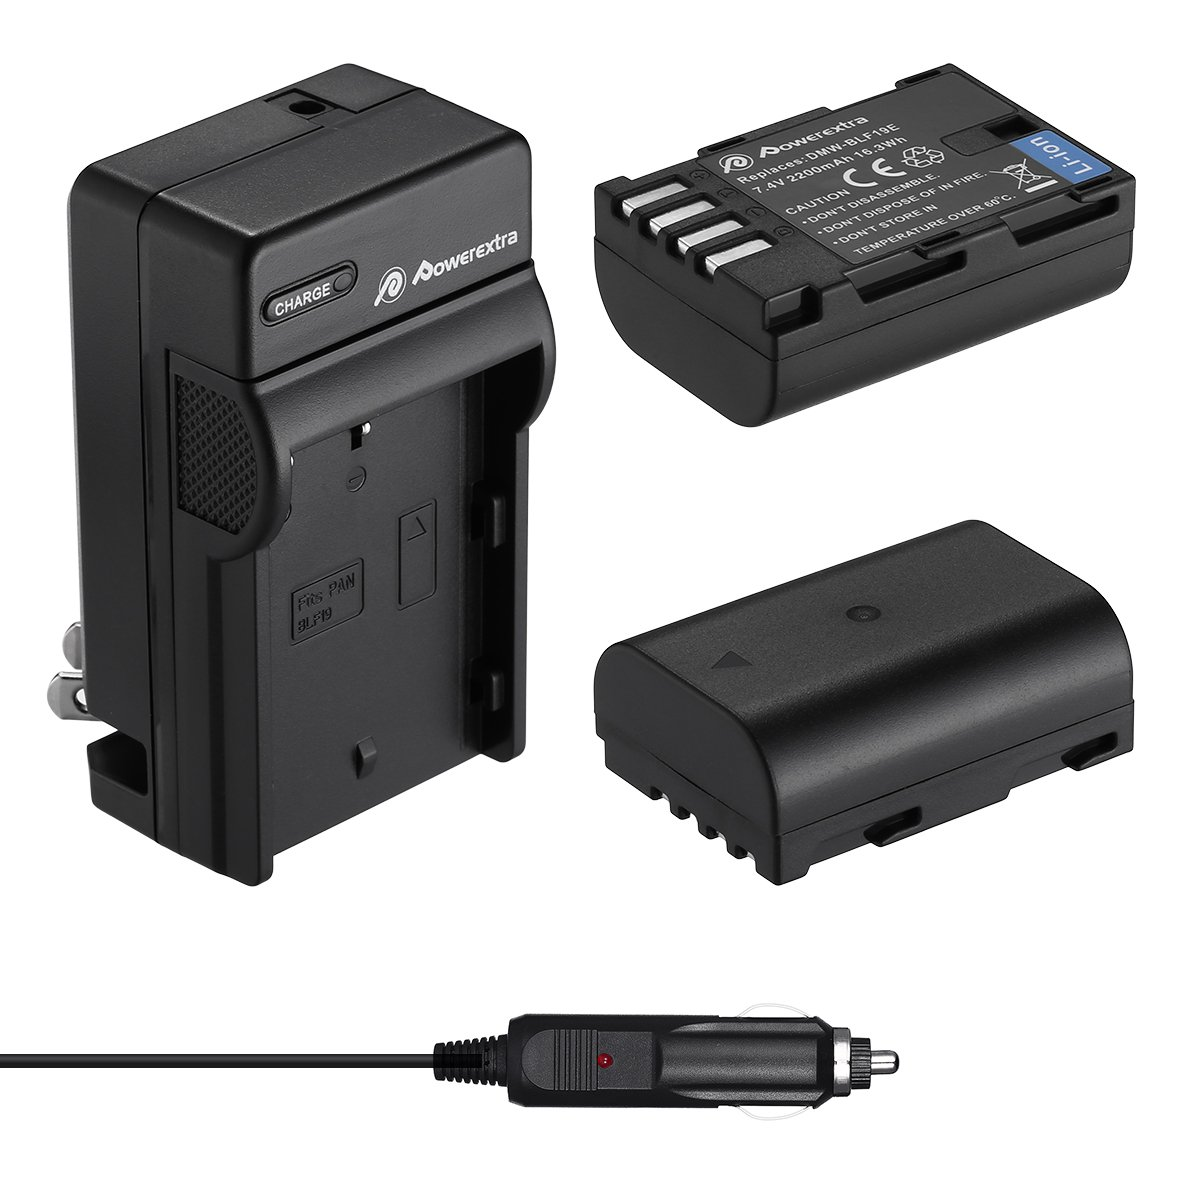 Powerextra 2 Pack High Capacity Replacement Battery and Charger Compatible with Panasonic DMW-BLF19, DMW-BLF19E, DMW-BLF19PP and Panasonic Lumix DC-GH5, DMC-GH3, DMC-GH3K, DMC-GH4, DMC-GH4K